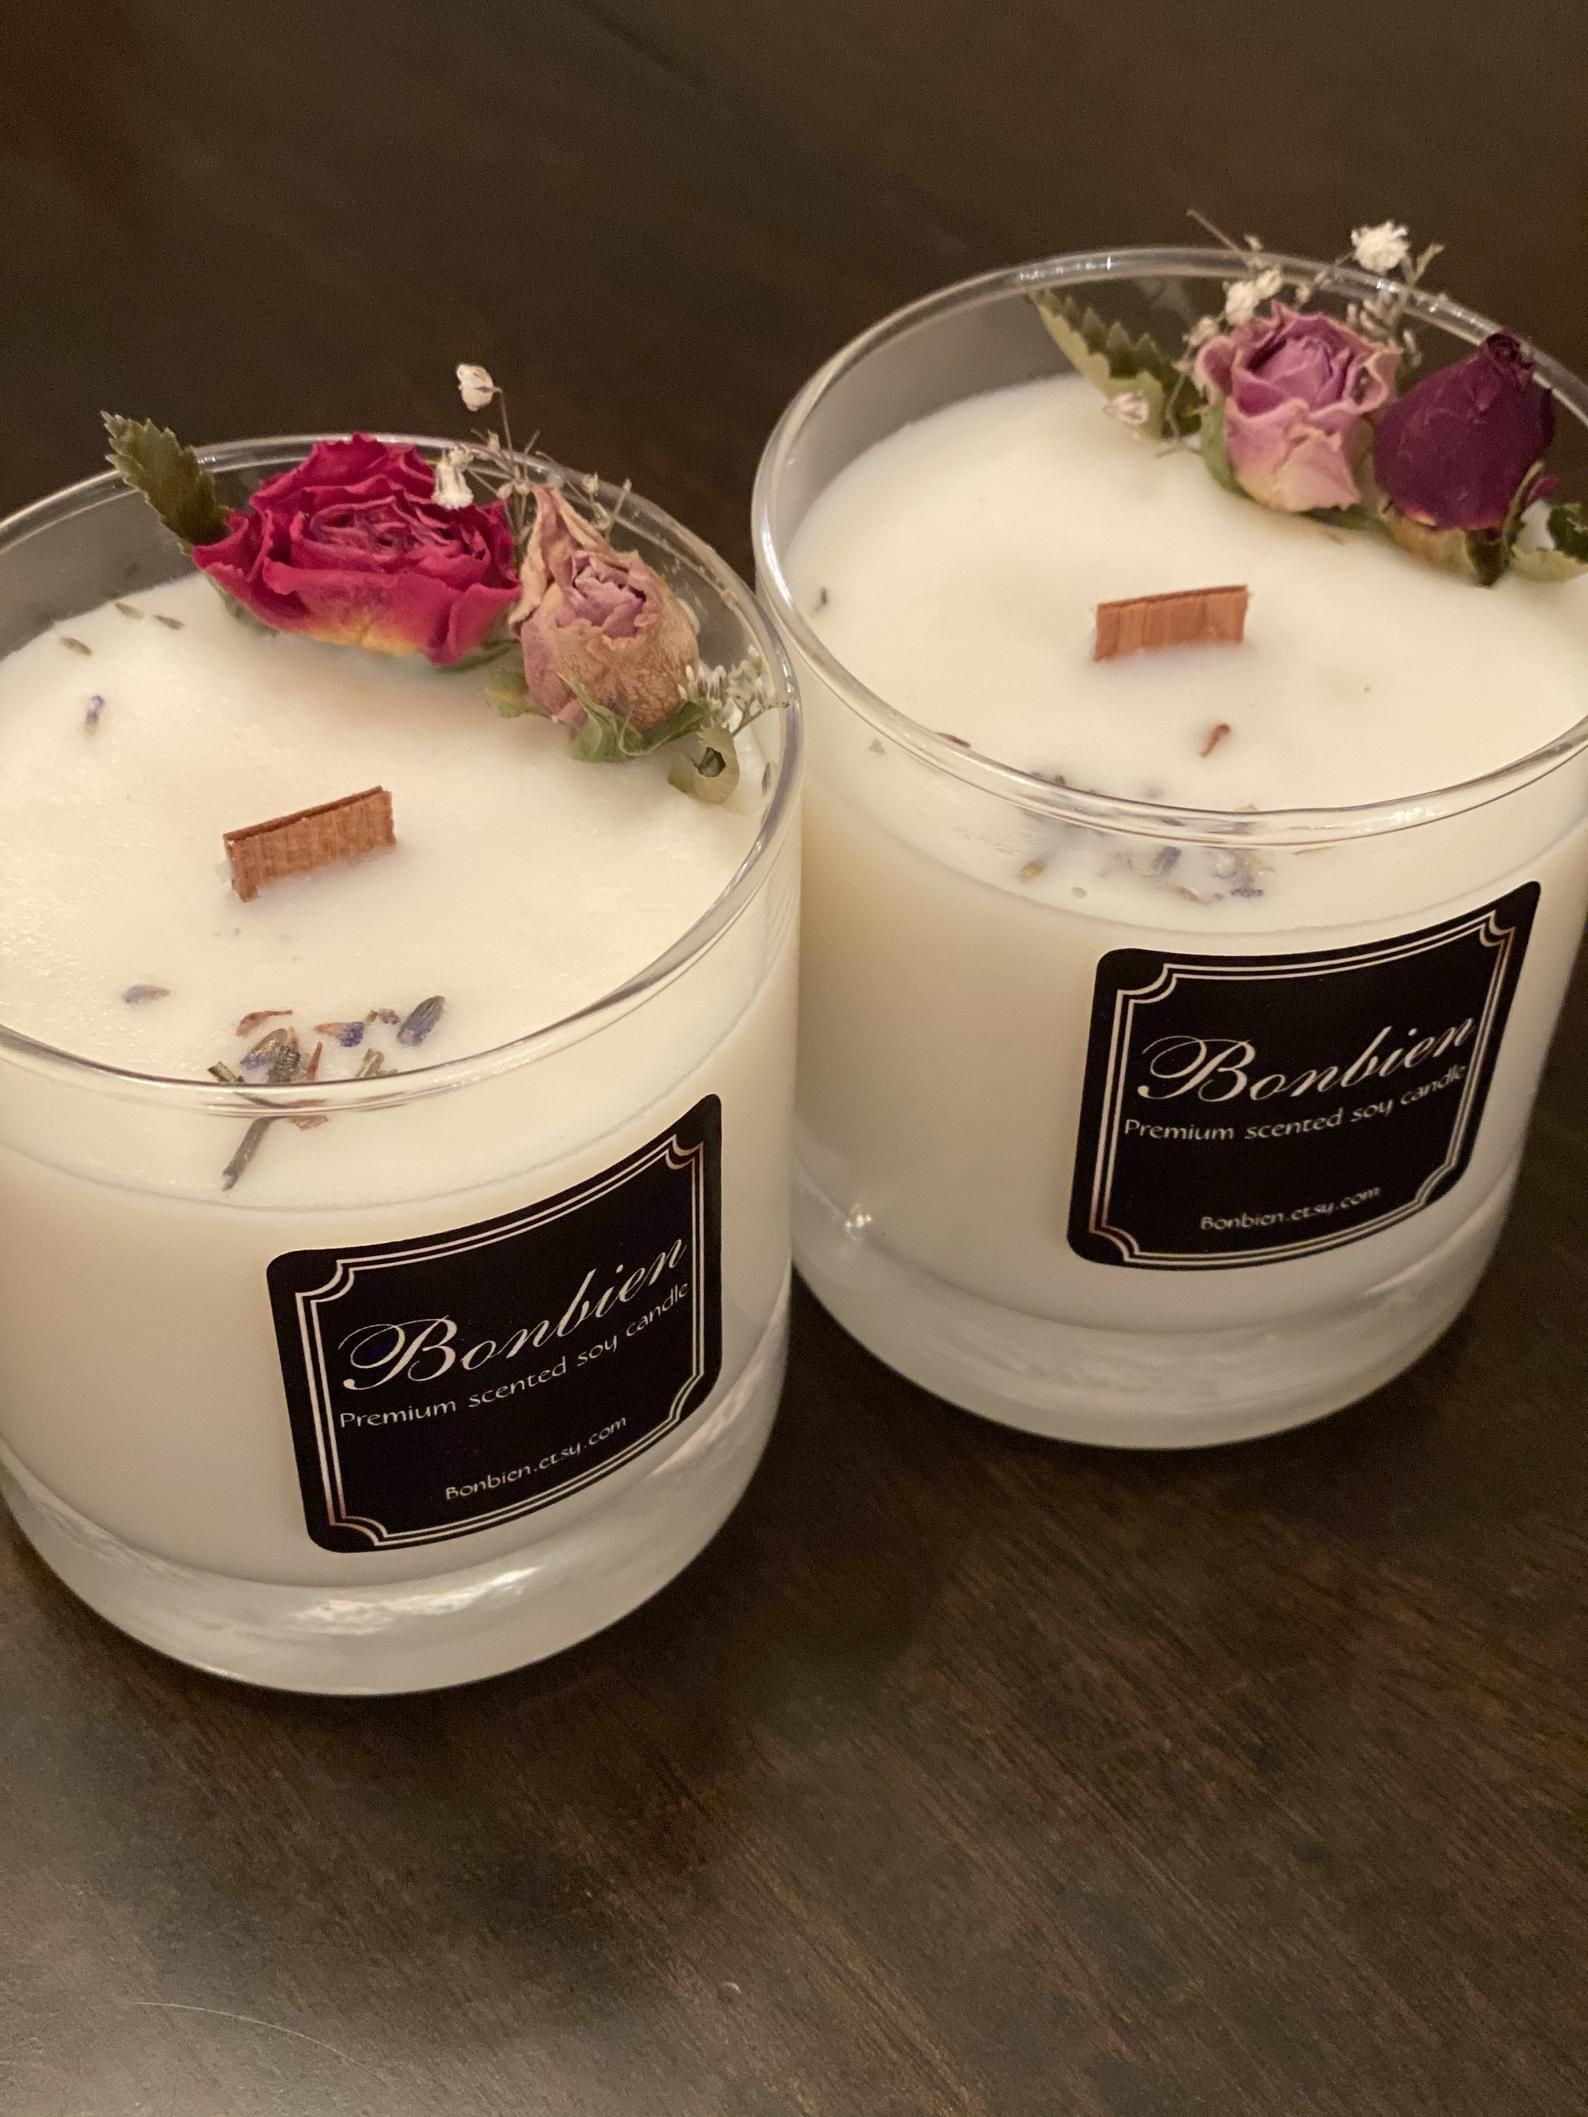 Flower Candle Premium Gift Tulip Mothers Trend Best Home deco Soy Natural Vegan Candle